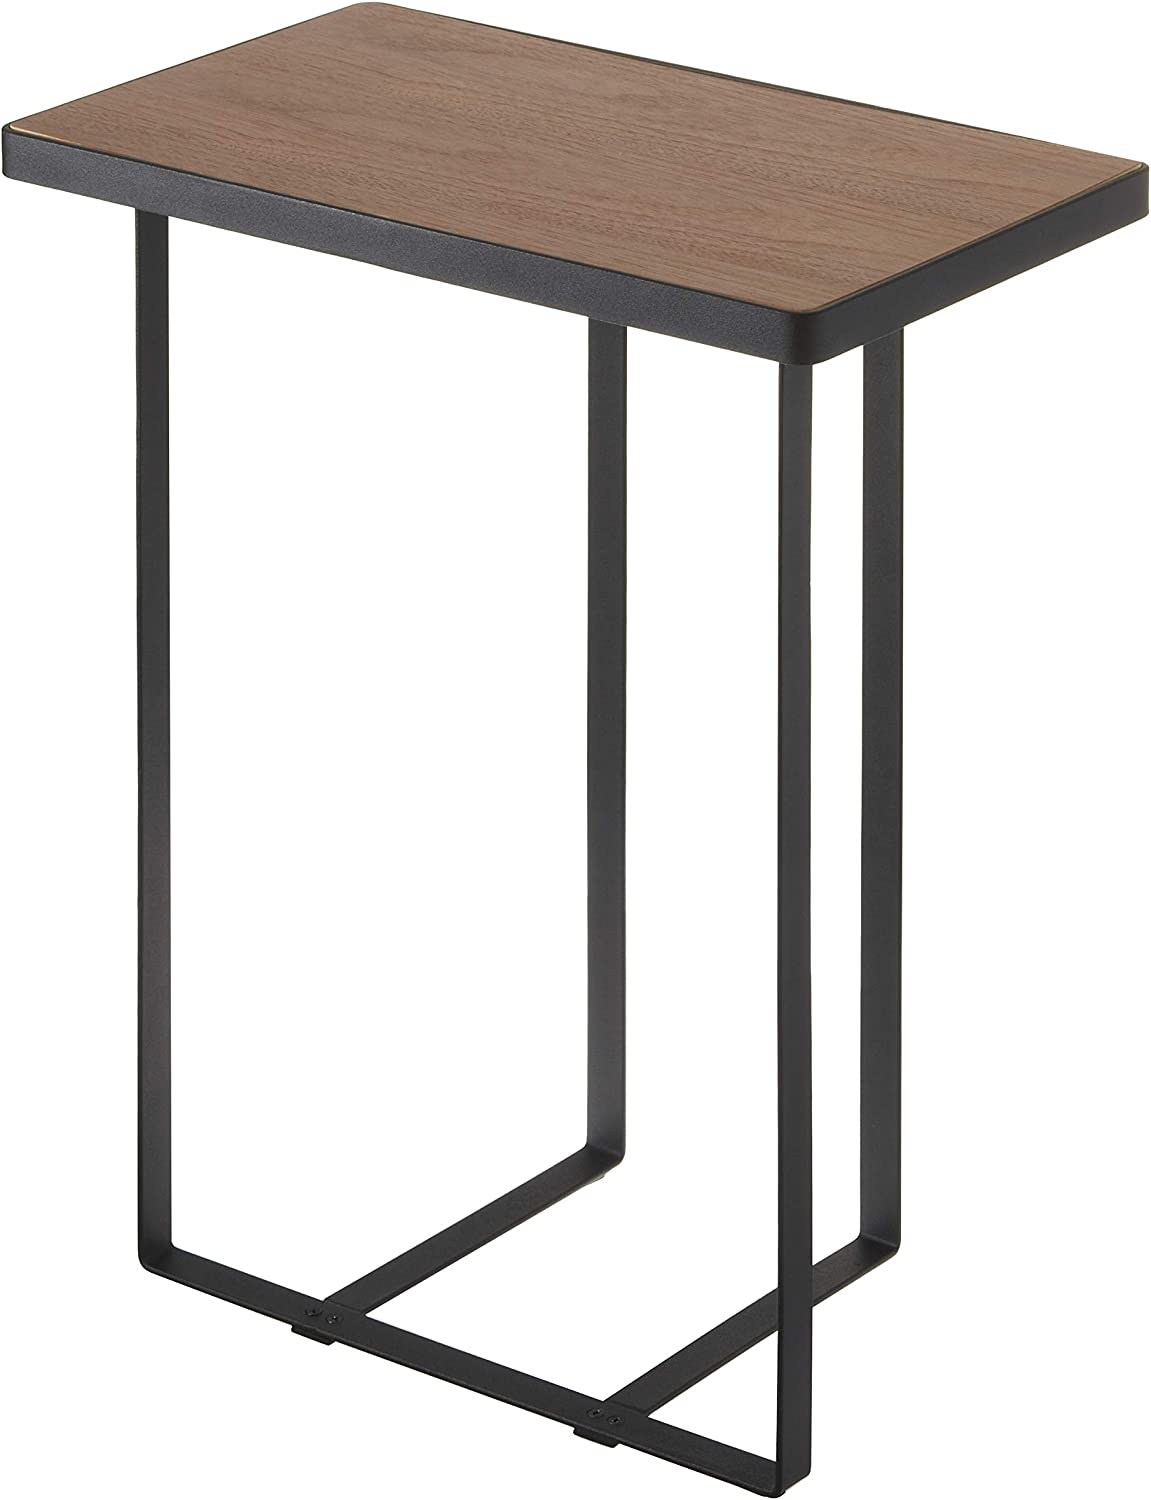 magazine stand mid century small table Occasional table Metal wood stand holder